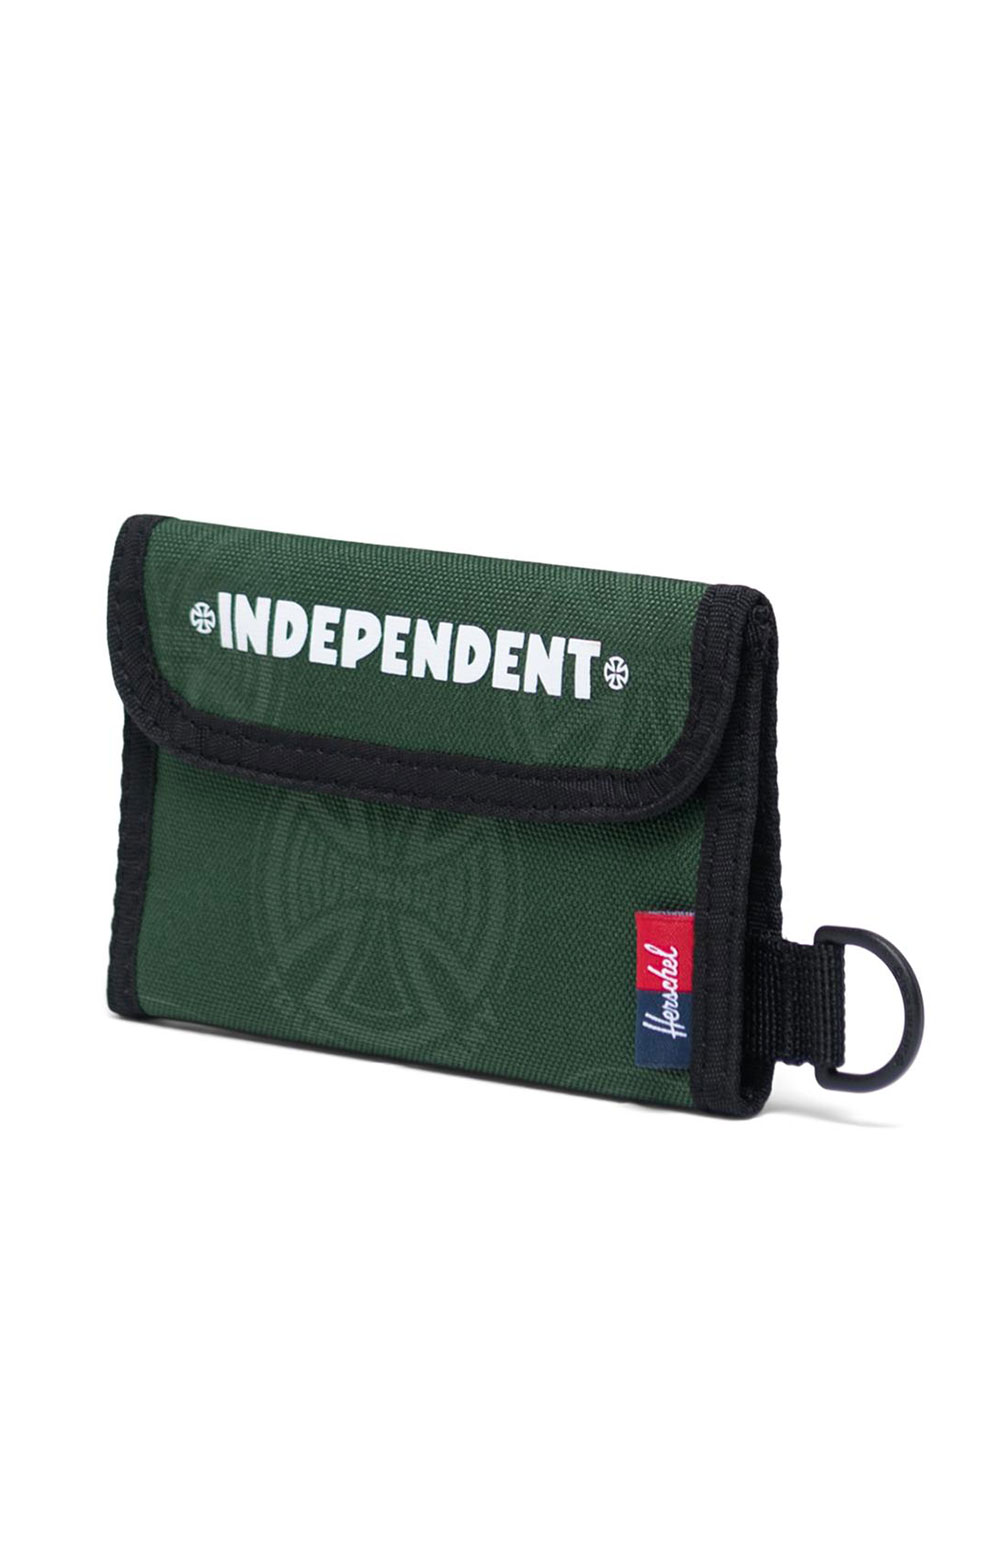 Fairway Wallet - Independent Multi Cross Greener Pastures 2